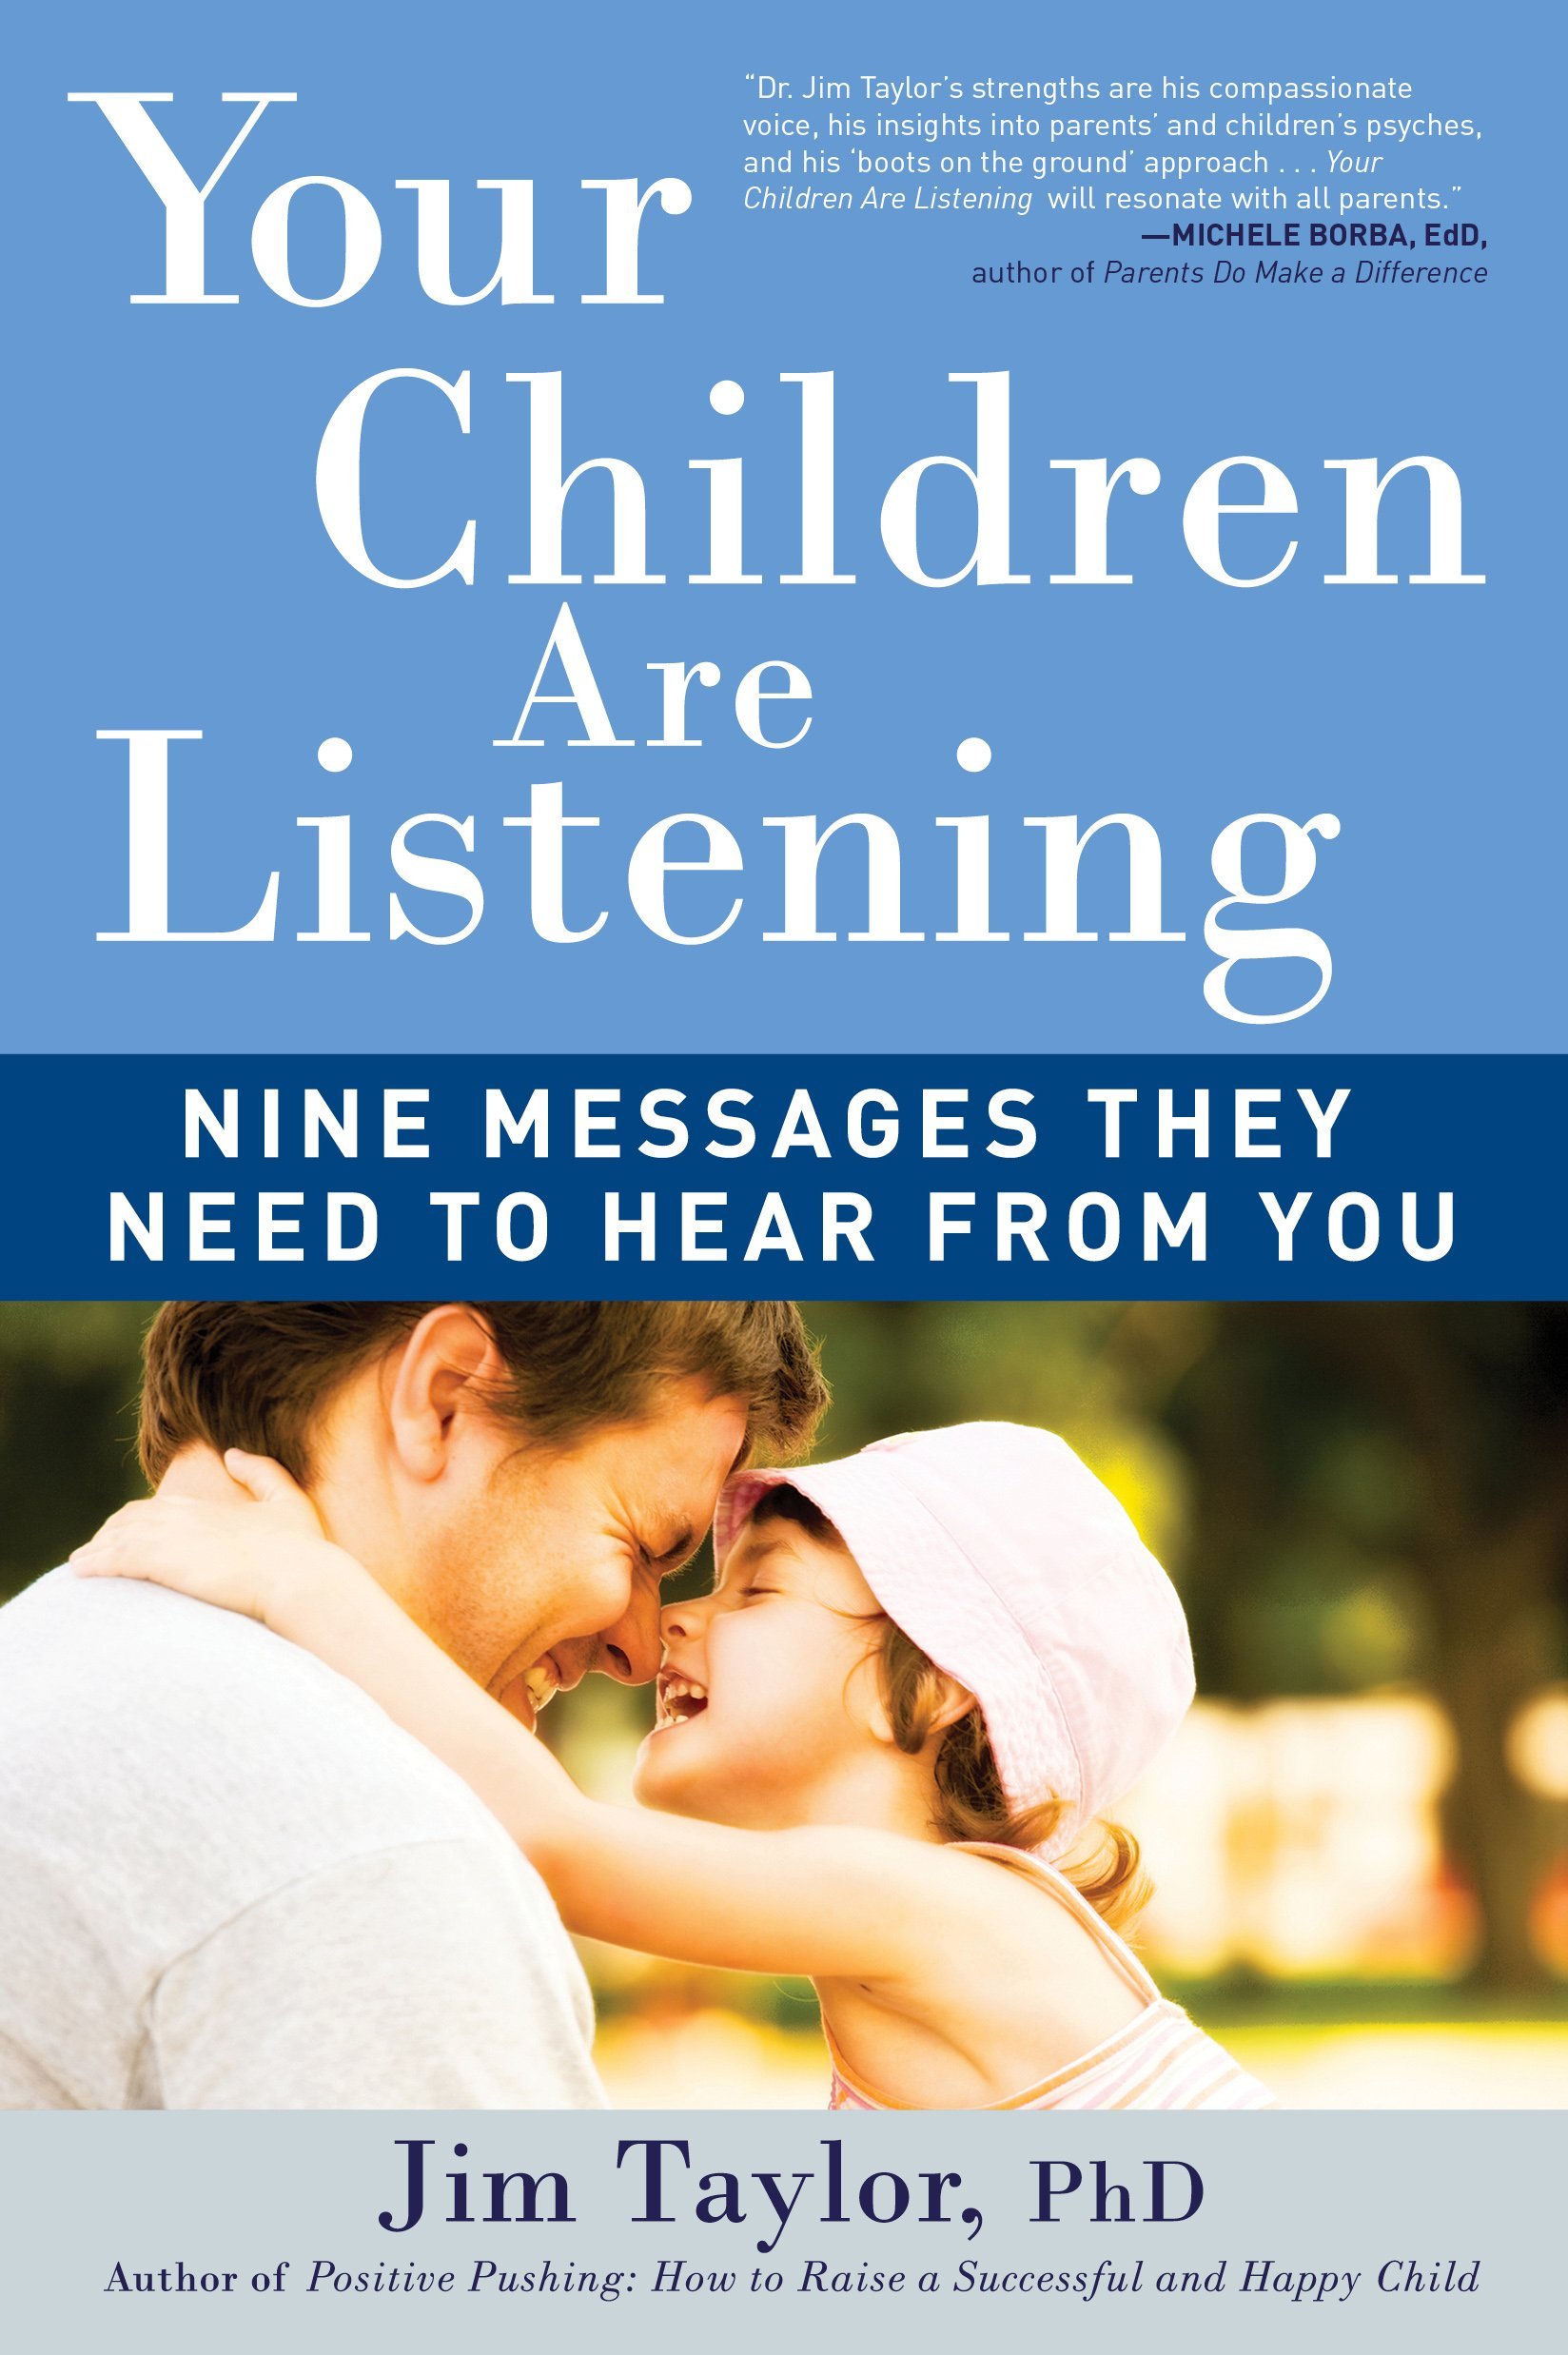 We Need To Hear From All Parents And >> Your Children Are Listening Nine Messages They Need To Hear From